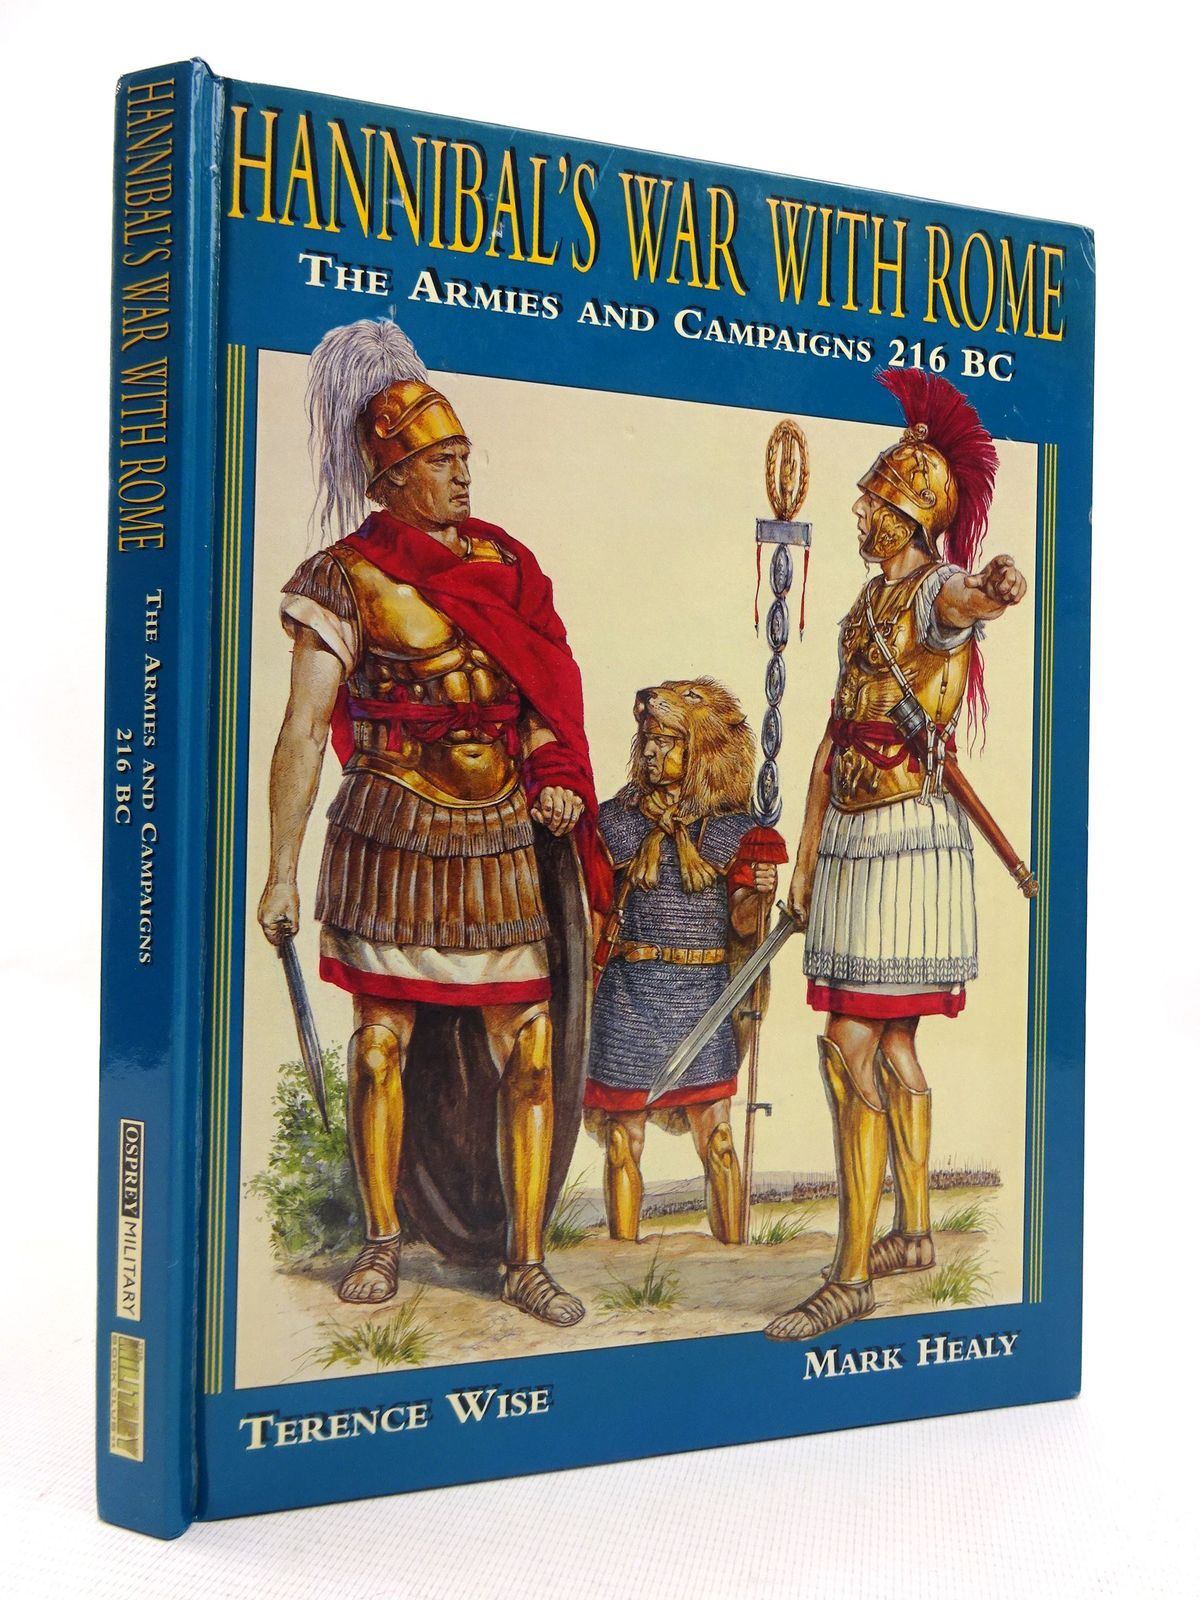 Photo of HANNIBAL'S WAR WITH ROME: THE ARMIES AND CAMPAIGNS 216 BC written by Wise, Terence<br />Healy, Mark published by Osprey Military (STOCK CODE: 1816027)  for sale by Stella & Rose's Books